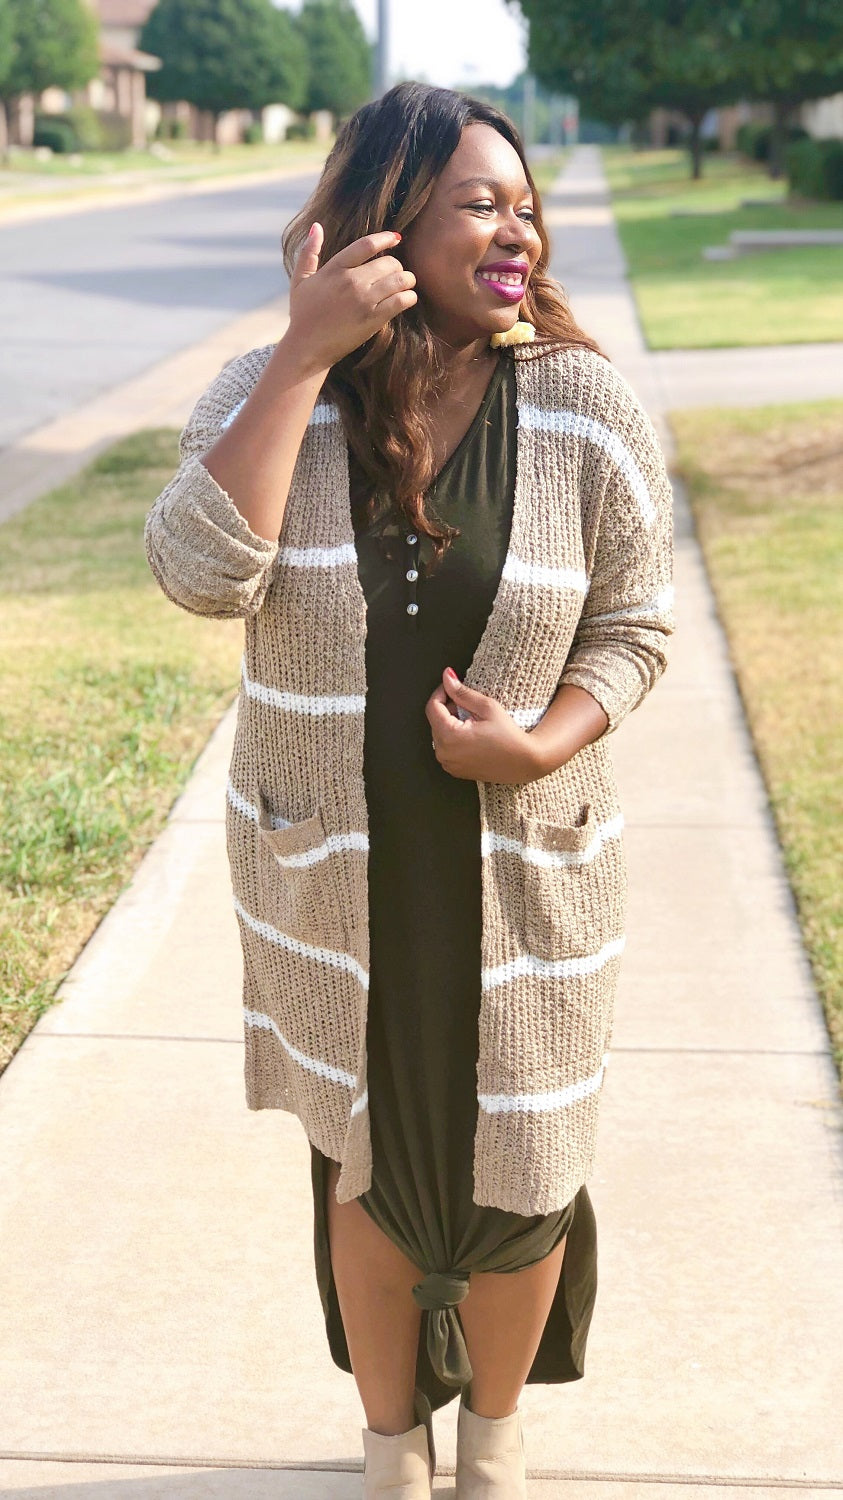 cherish tan and white striped knit duster cardigan